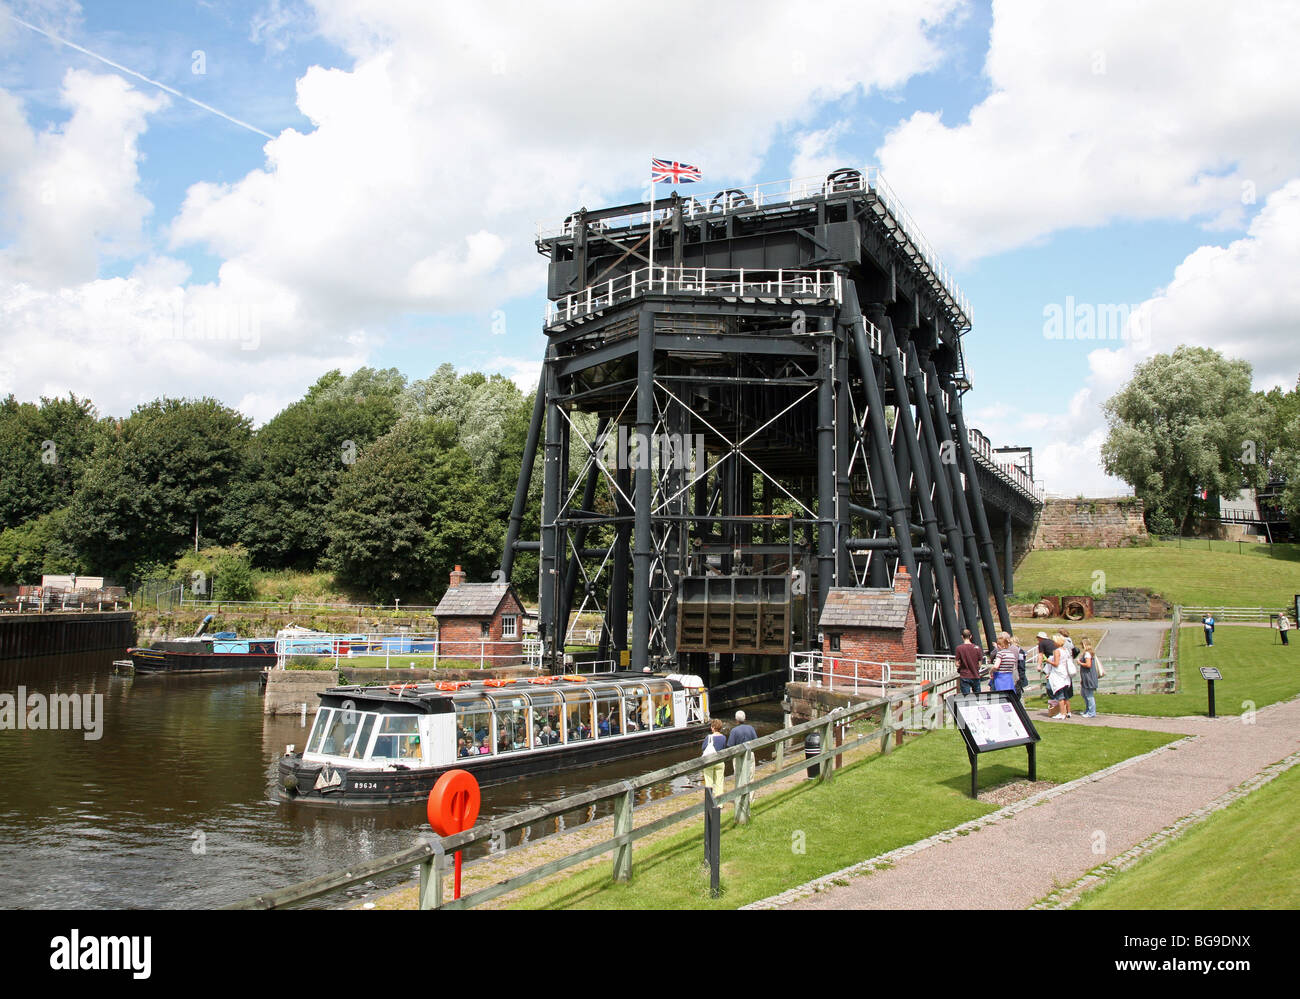 anderton-boat-lift-on-the-trent-and-mersey-canal-anderton-cheshire-BG9DNX.jpg